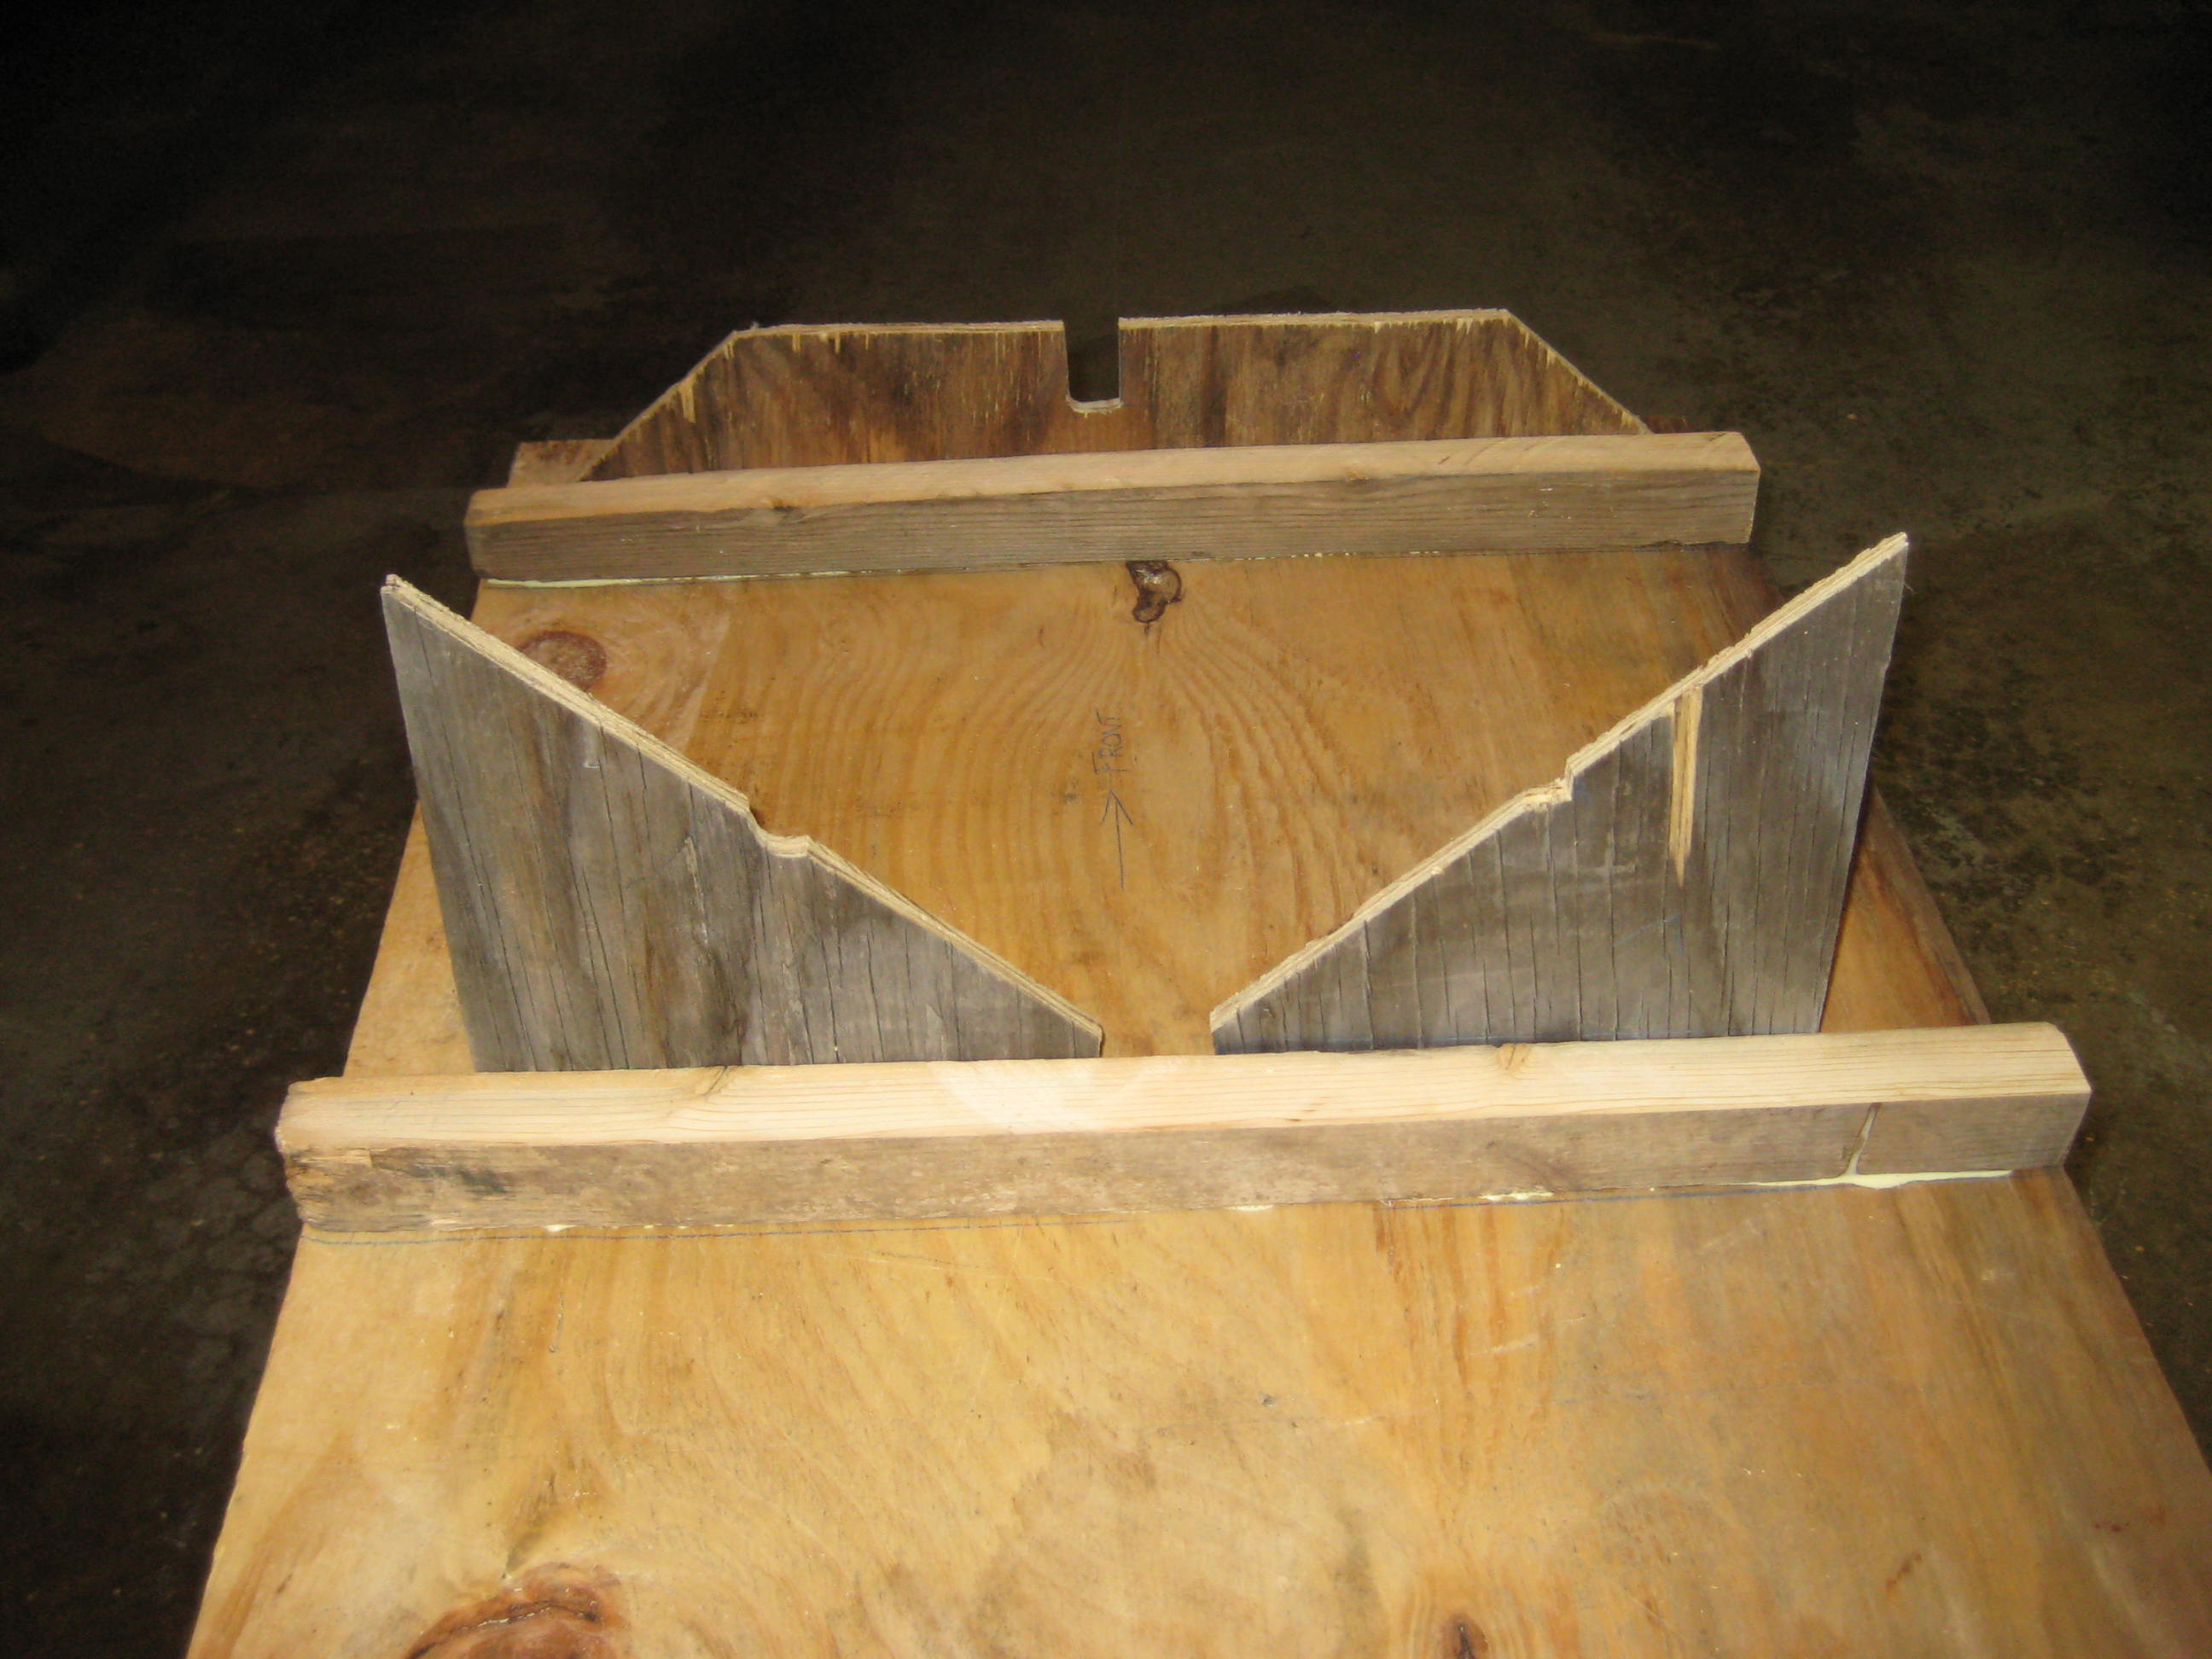 Picture of Assembly of Bracing